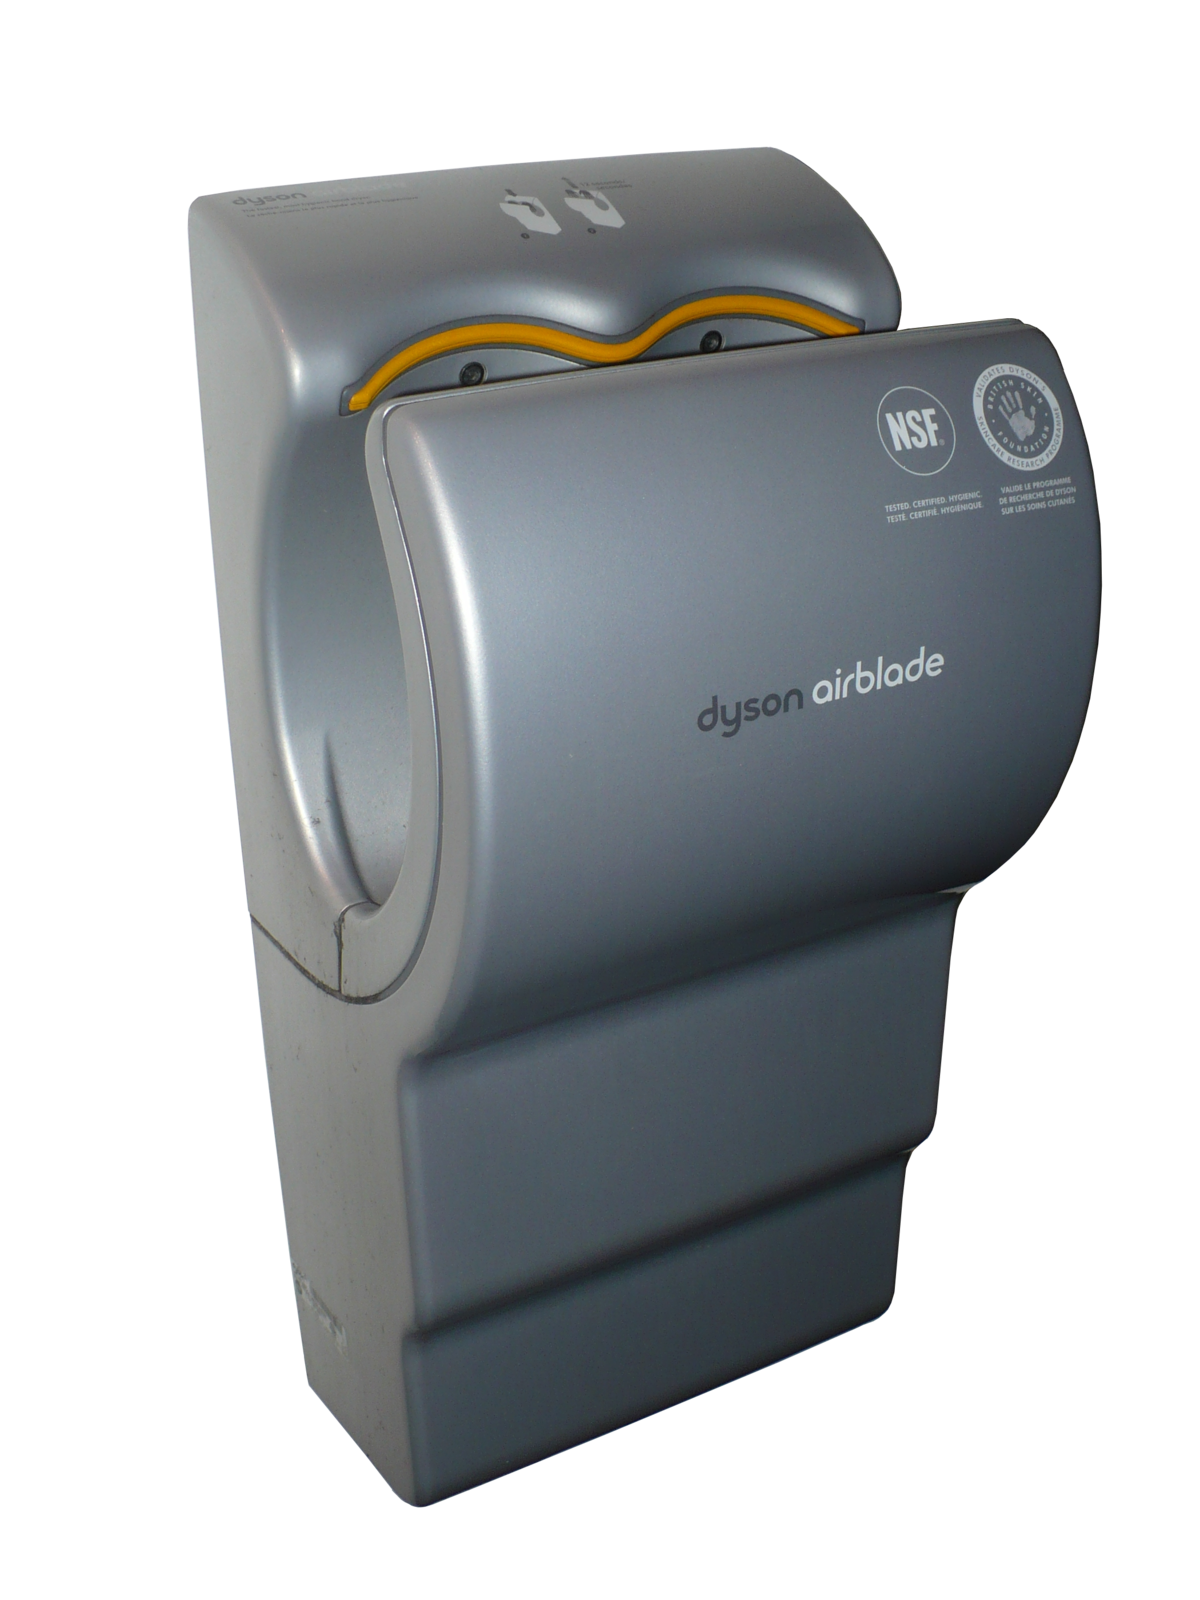 dyson airblade wikipedia. Black Bedroom Furniture Sets. Home Design Ideas